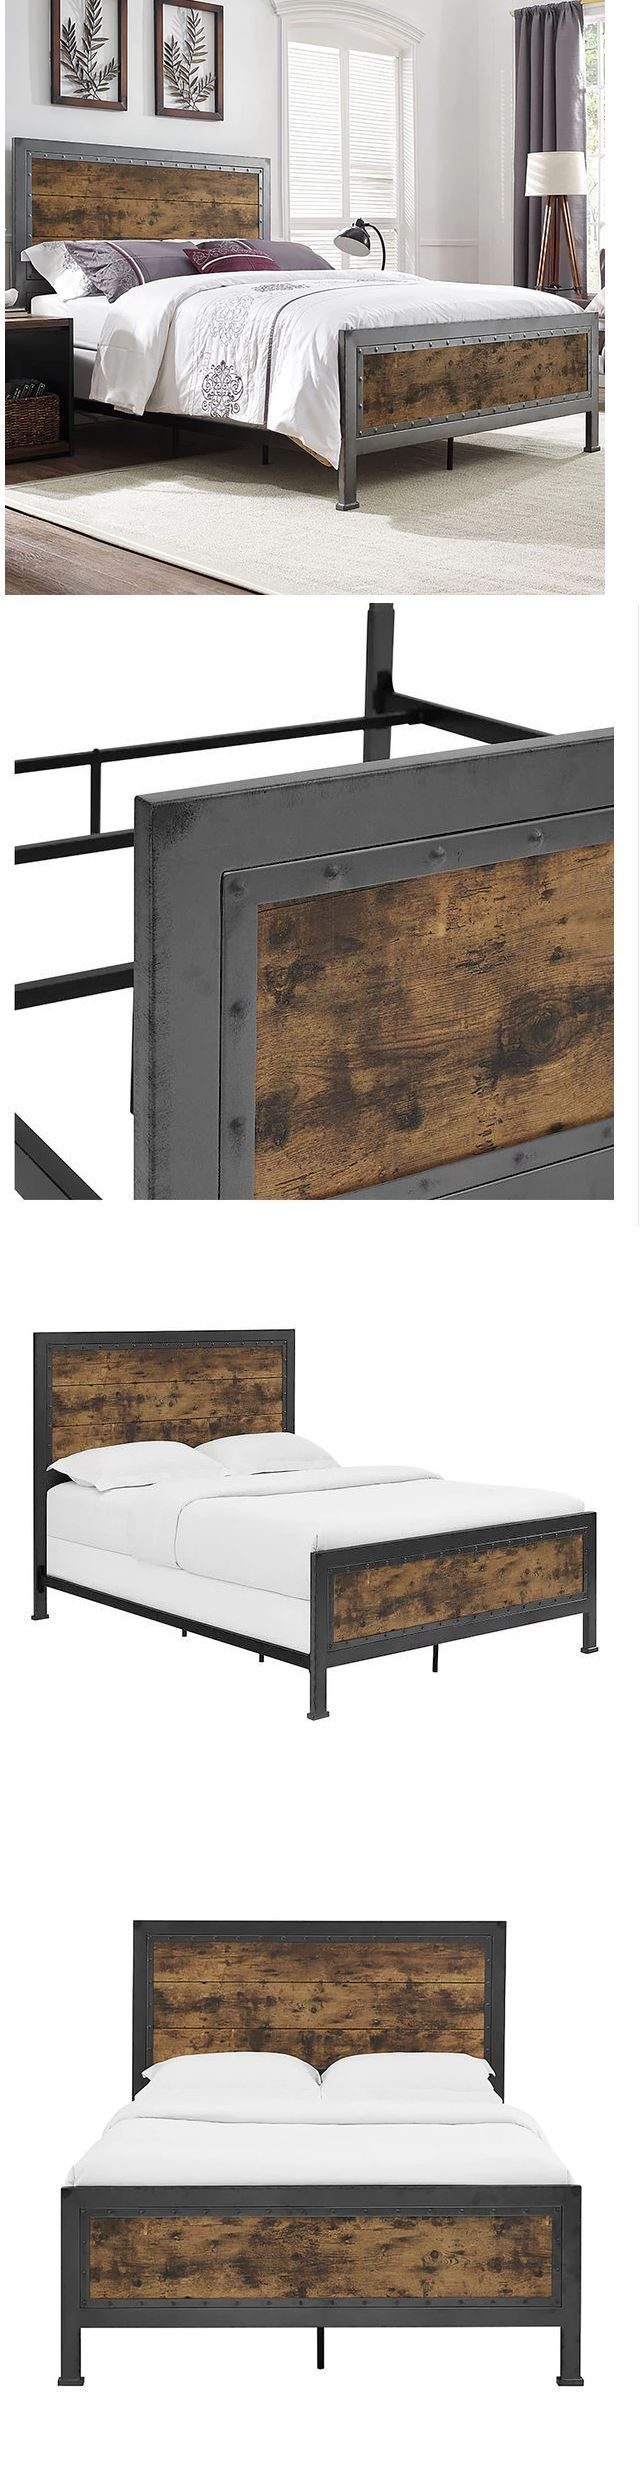 Bedding: Bed Frame Queen With Headboard Rustic Vintage Reclaimed Wood Industrial Bedroom -> BUY IT NOW ONLY: $431.95 on eBay!